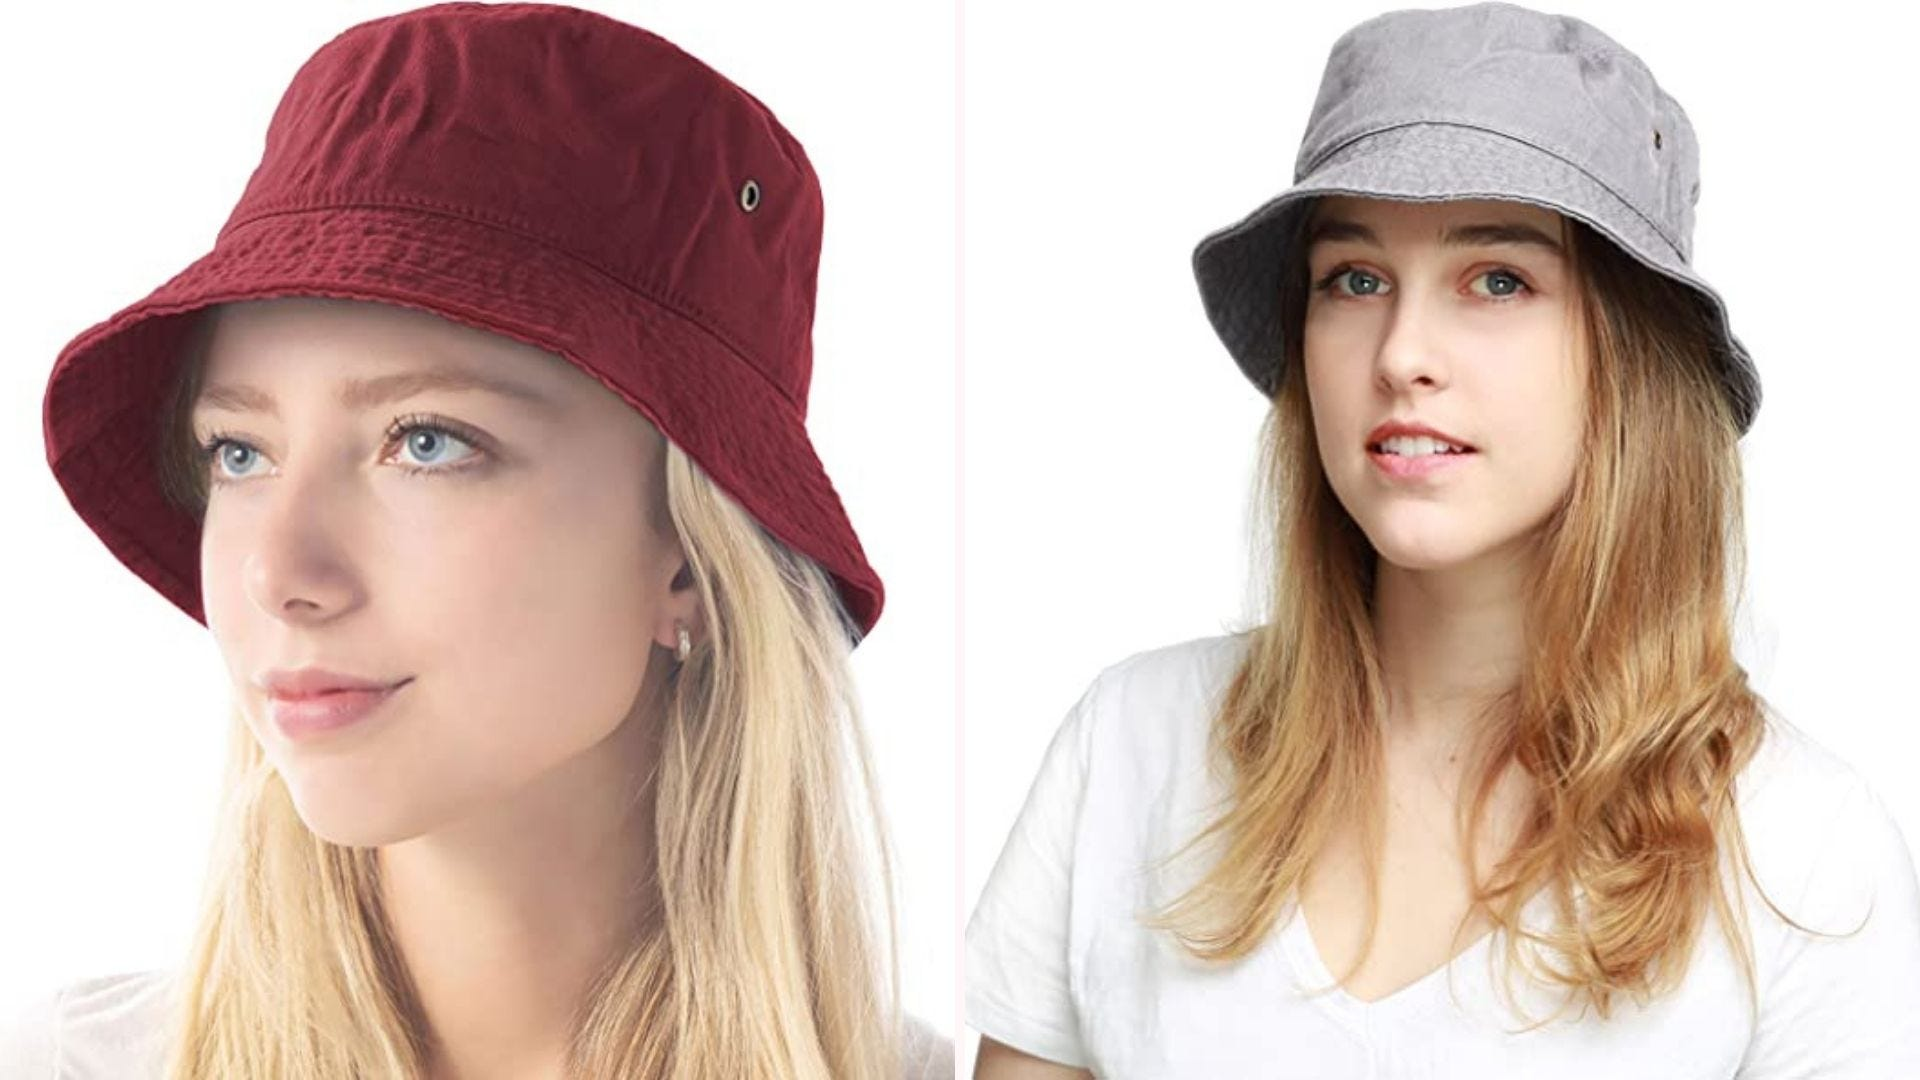 Two women wearing bucket hats - one wearing a berry red hat, one wearing a gray hat